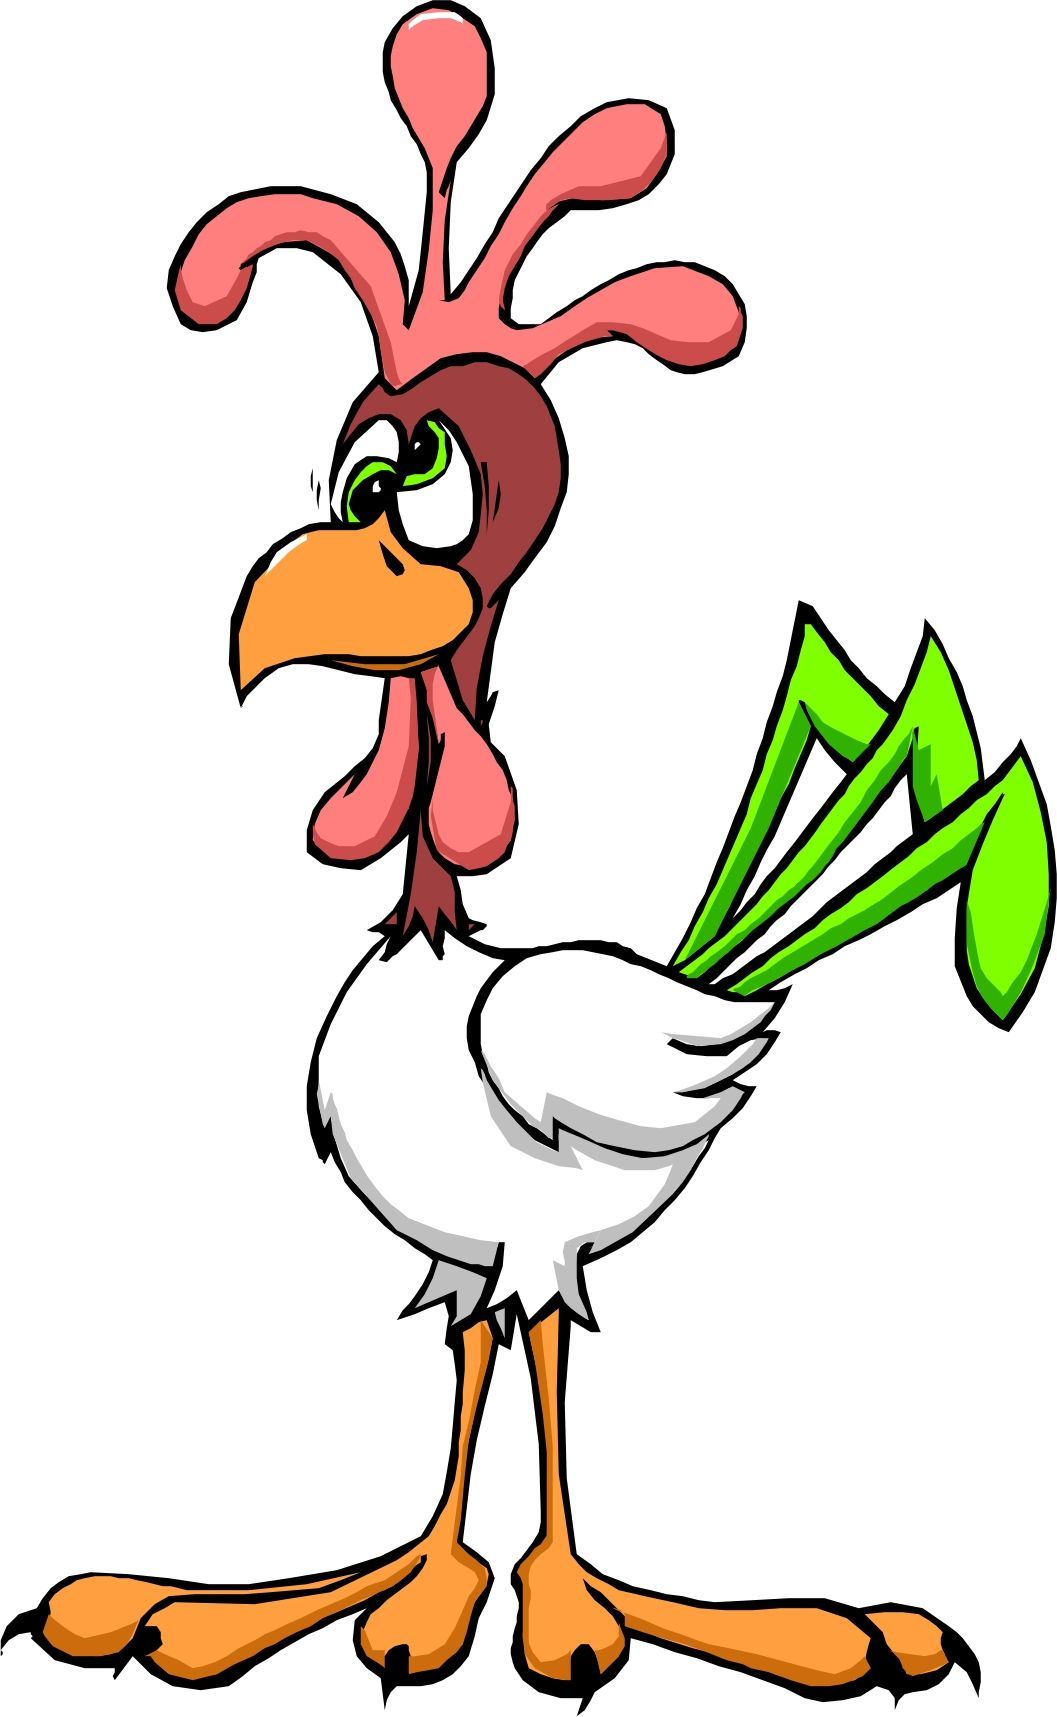 cartoon chickens clipart best backgrounds clipart images etc